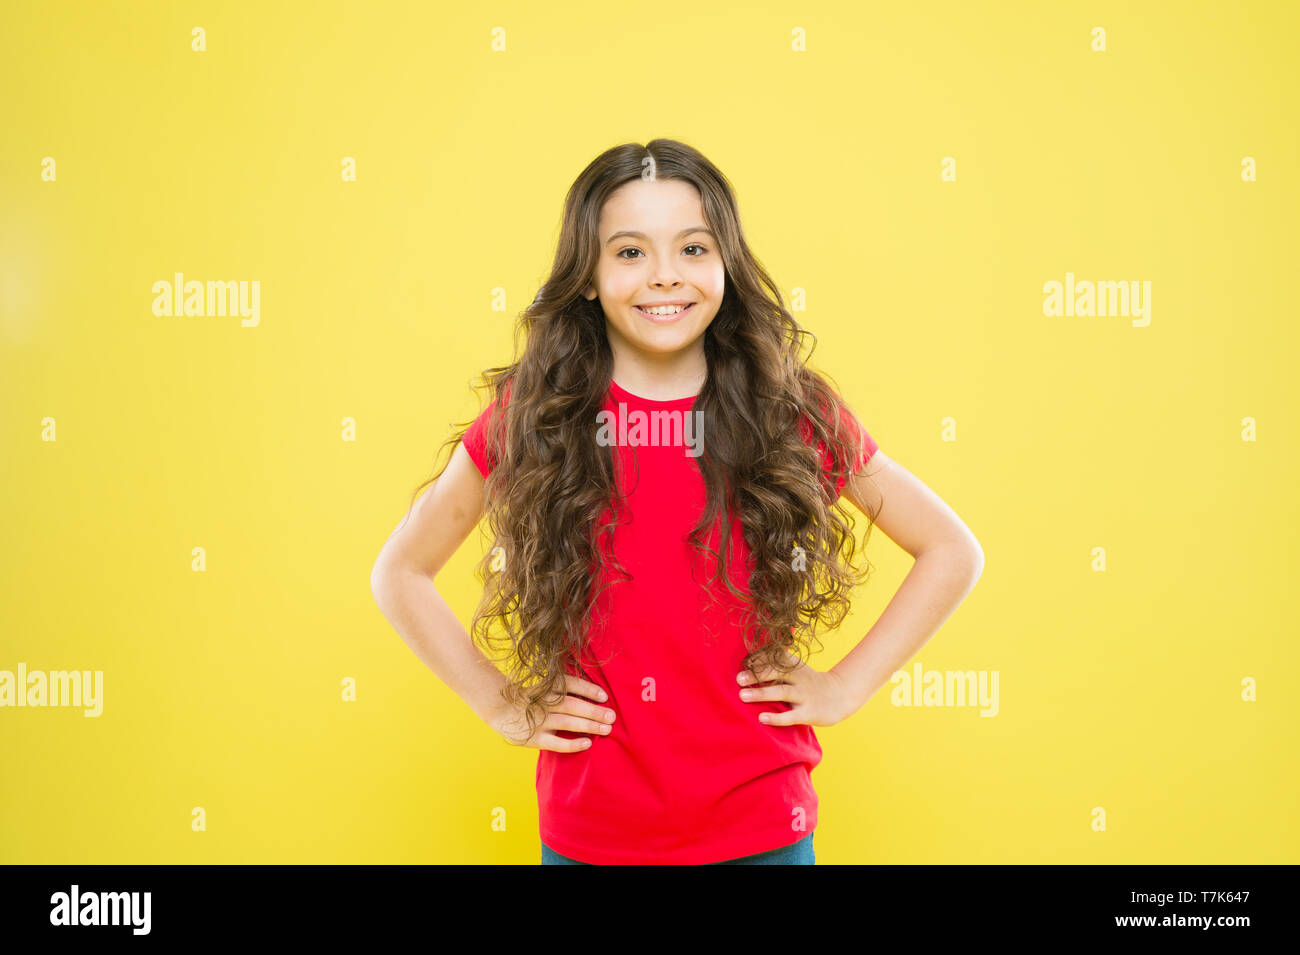 Wind can also damage hair. Girl adorable kid long wavy hair yellow background. Strong persistent winds can create tangles and snags in wavy and curly long hair. Things you doing to damage your hair. - Stock Image